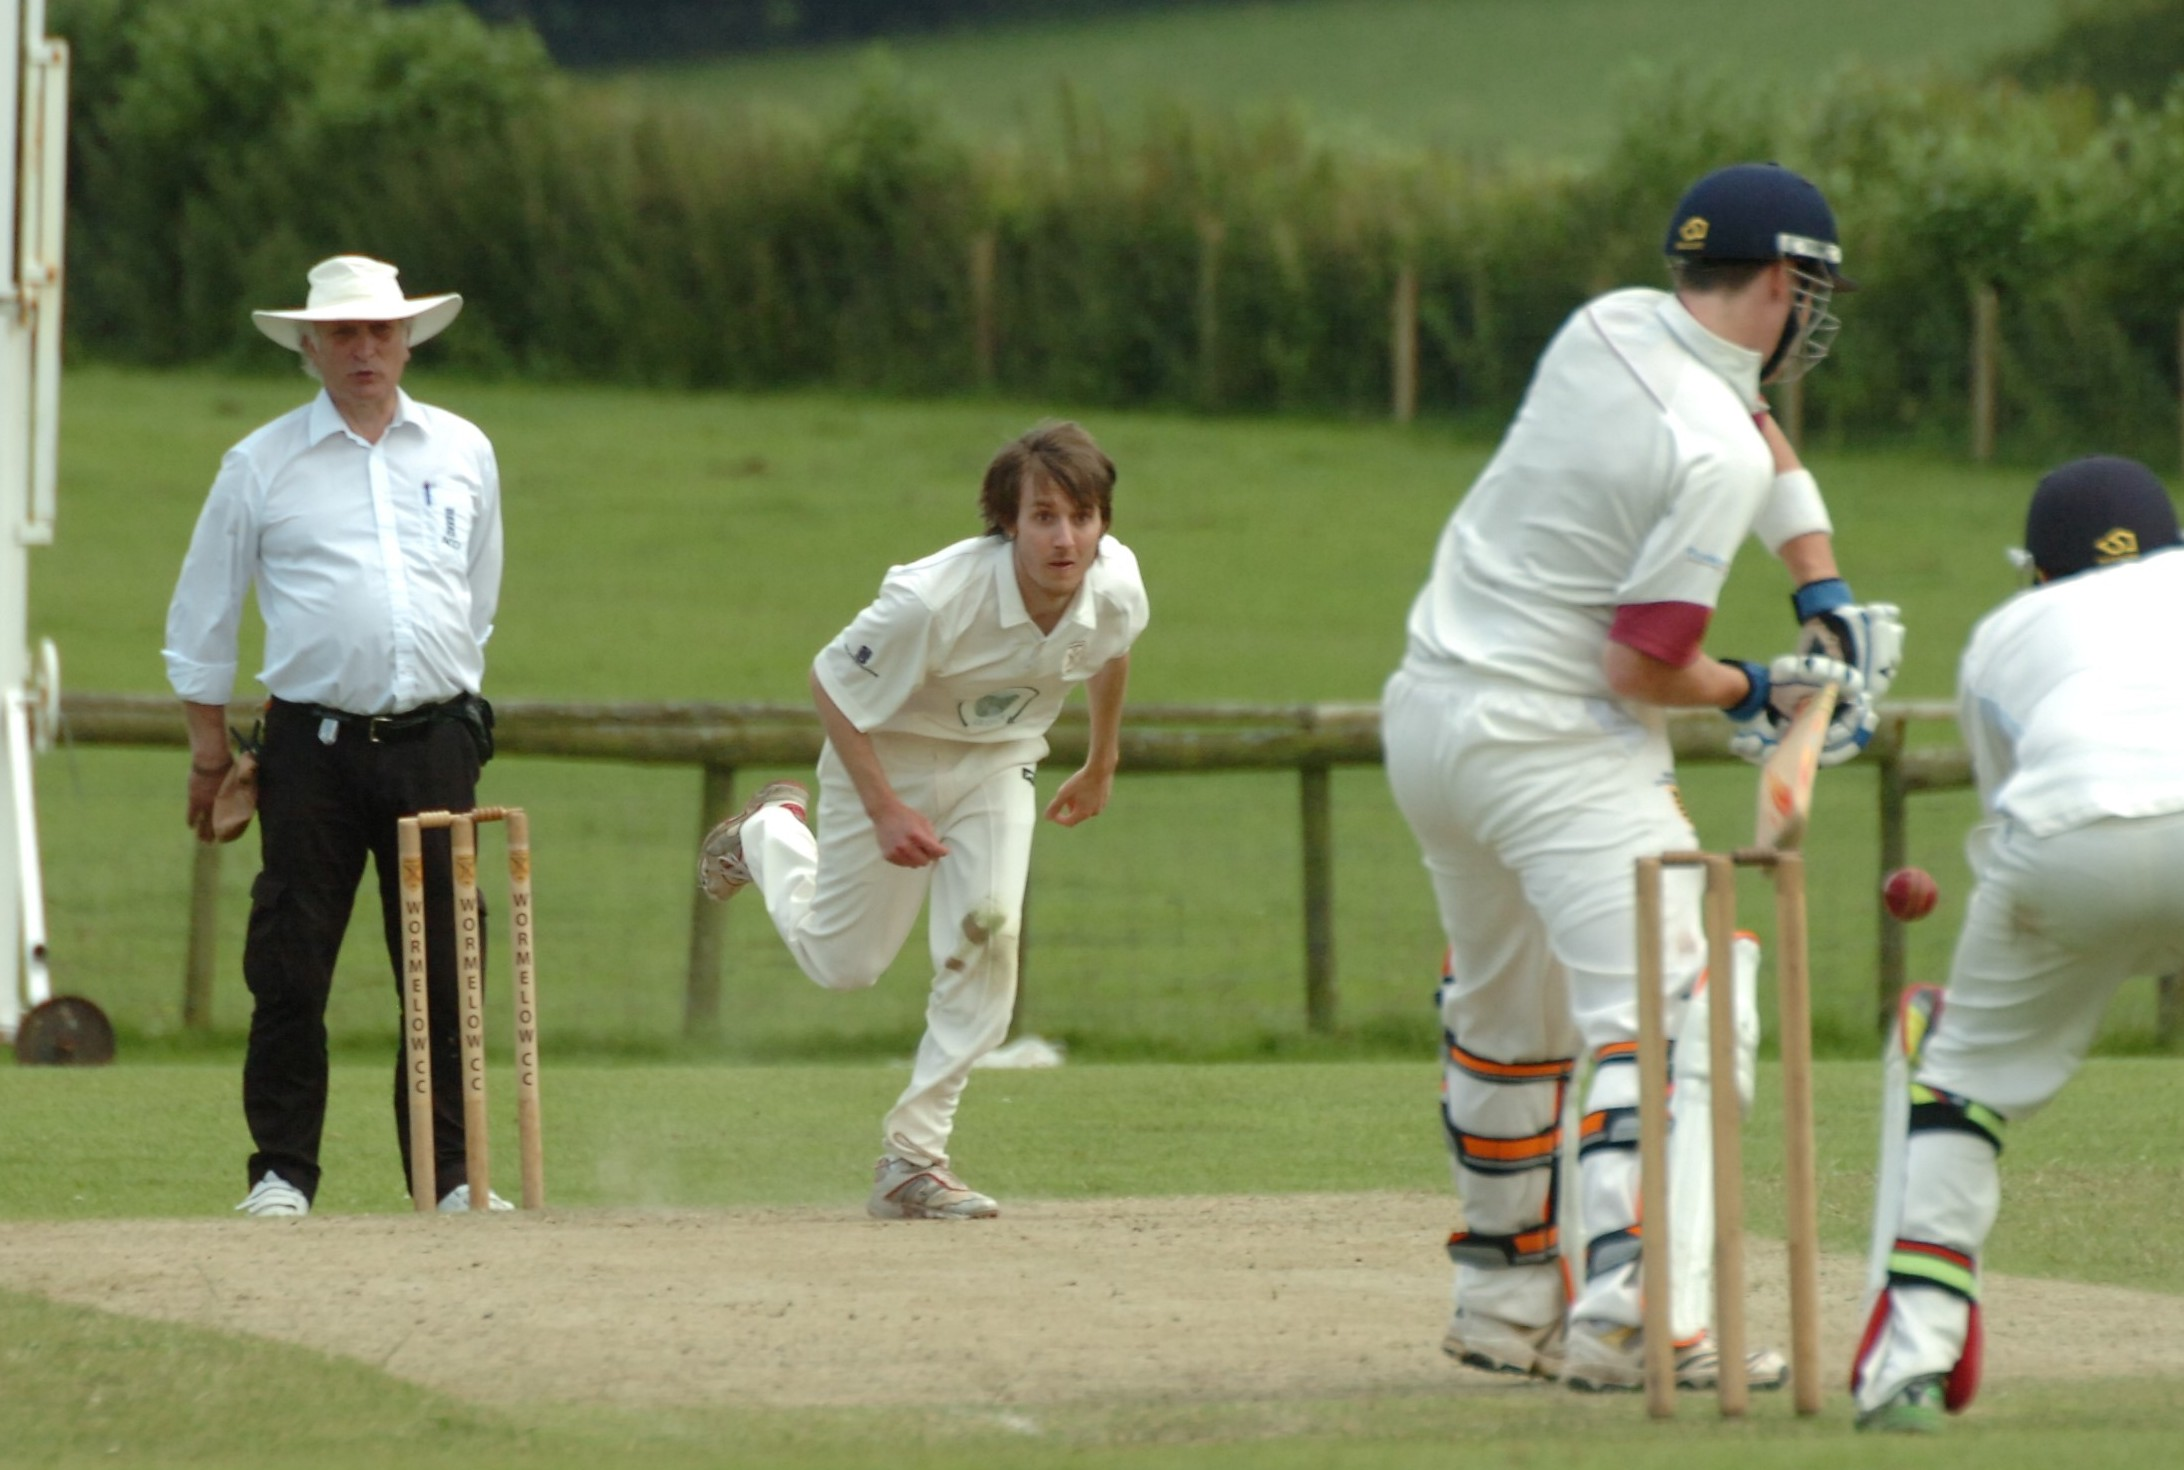 Burghill ease past Wormelow to keep up promotion bid